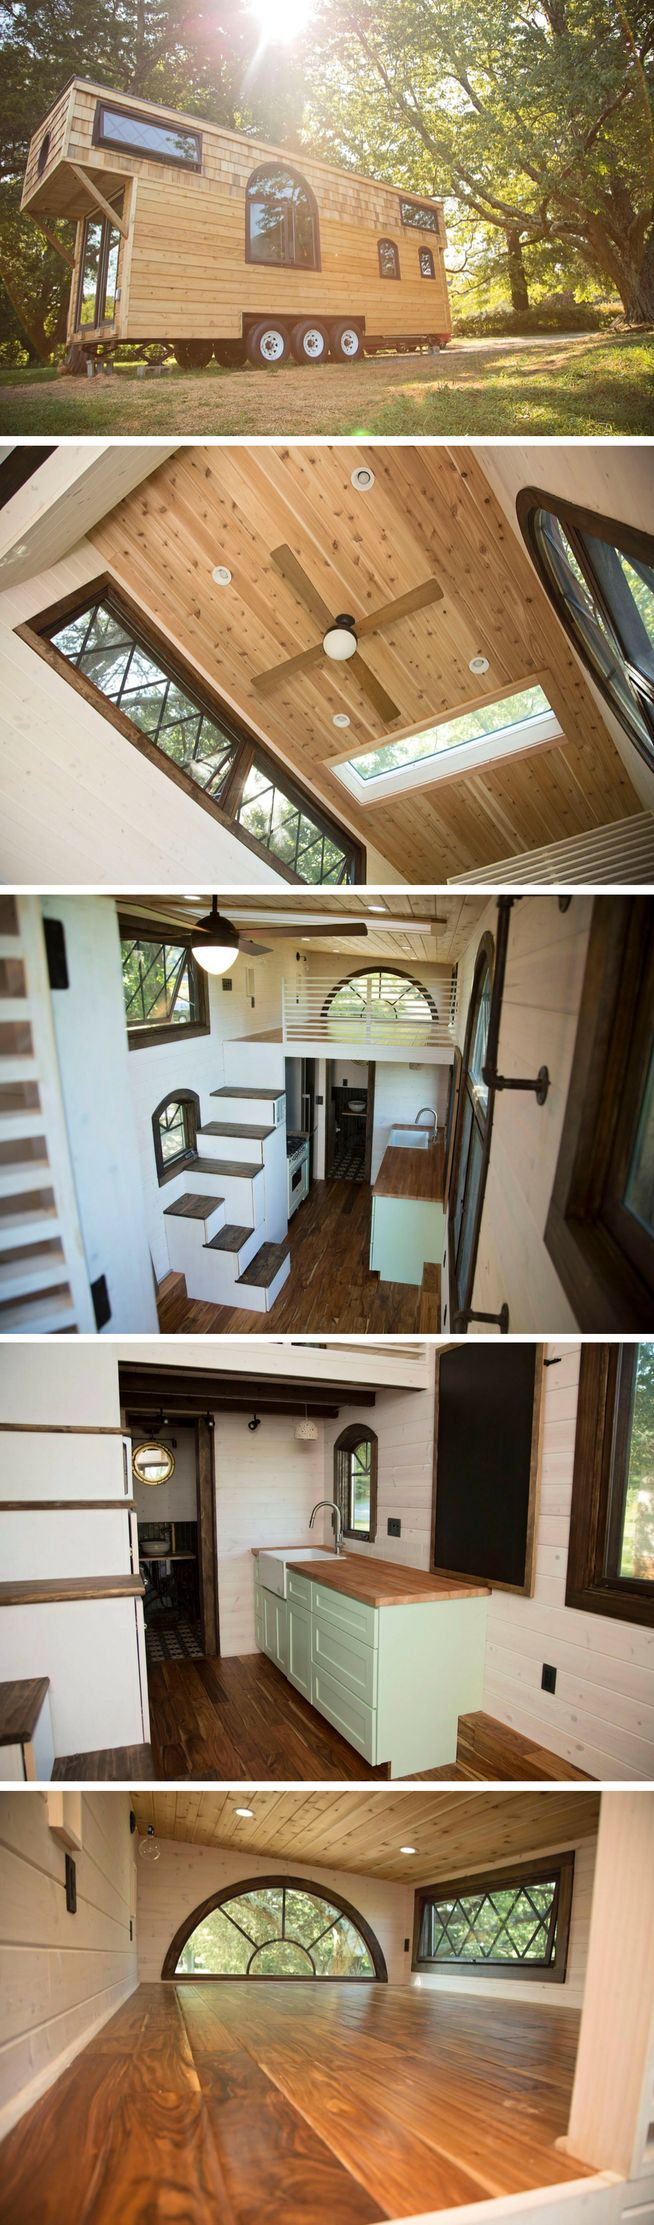 Strange 17 Best Ideas About Tiny House Interiors On Pinterest Tiny House Largest Home Design Picture Inspirations Pitcheantrous